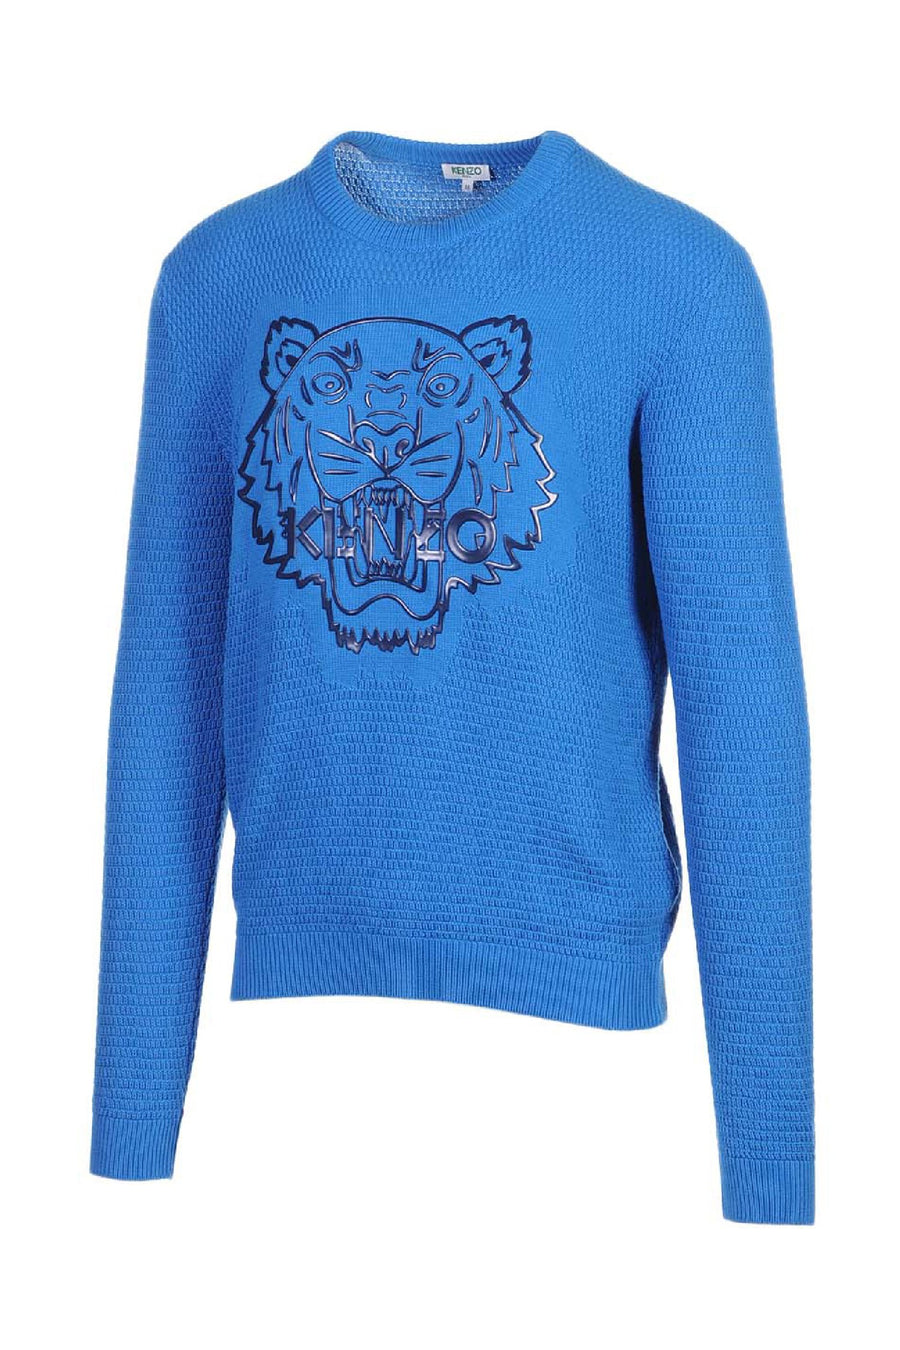 Silicon Tiger Sweater Men Fashion Kenzo Paris Cotton Knit Long Sleeve